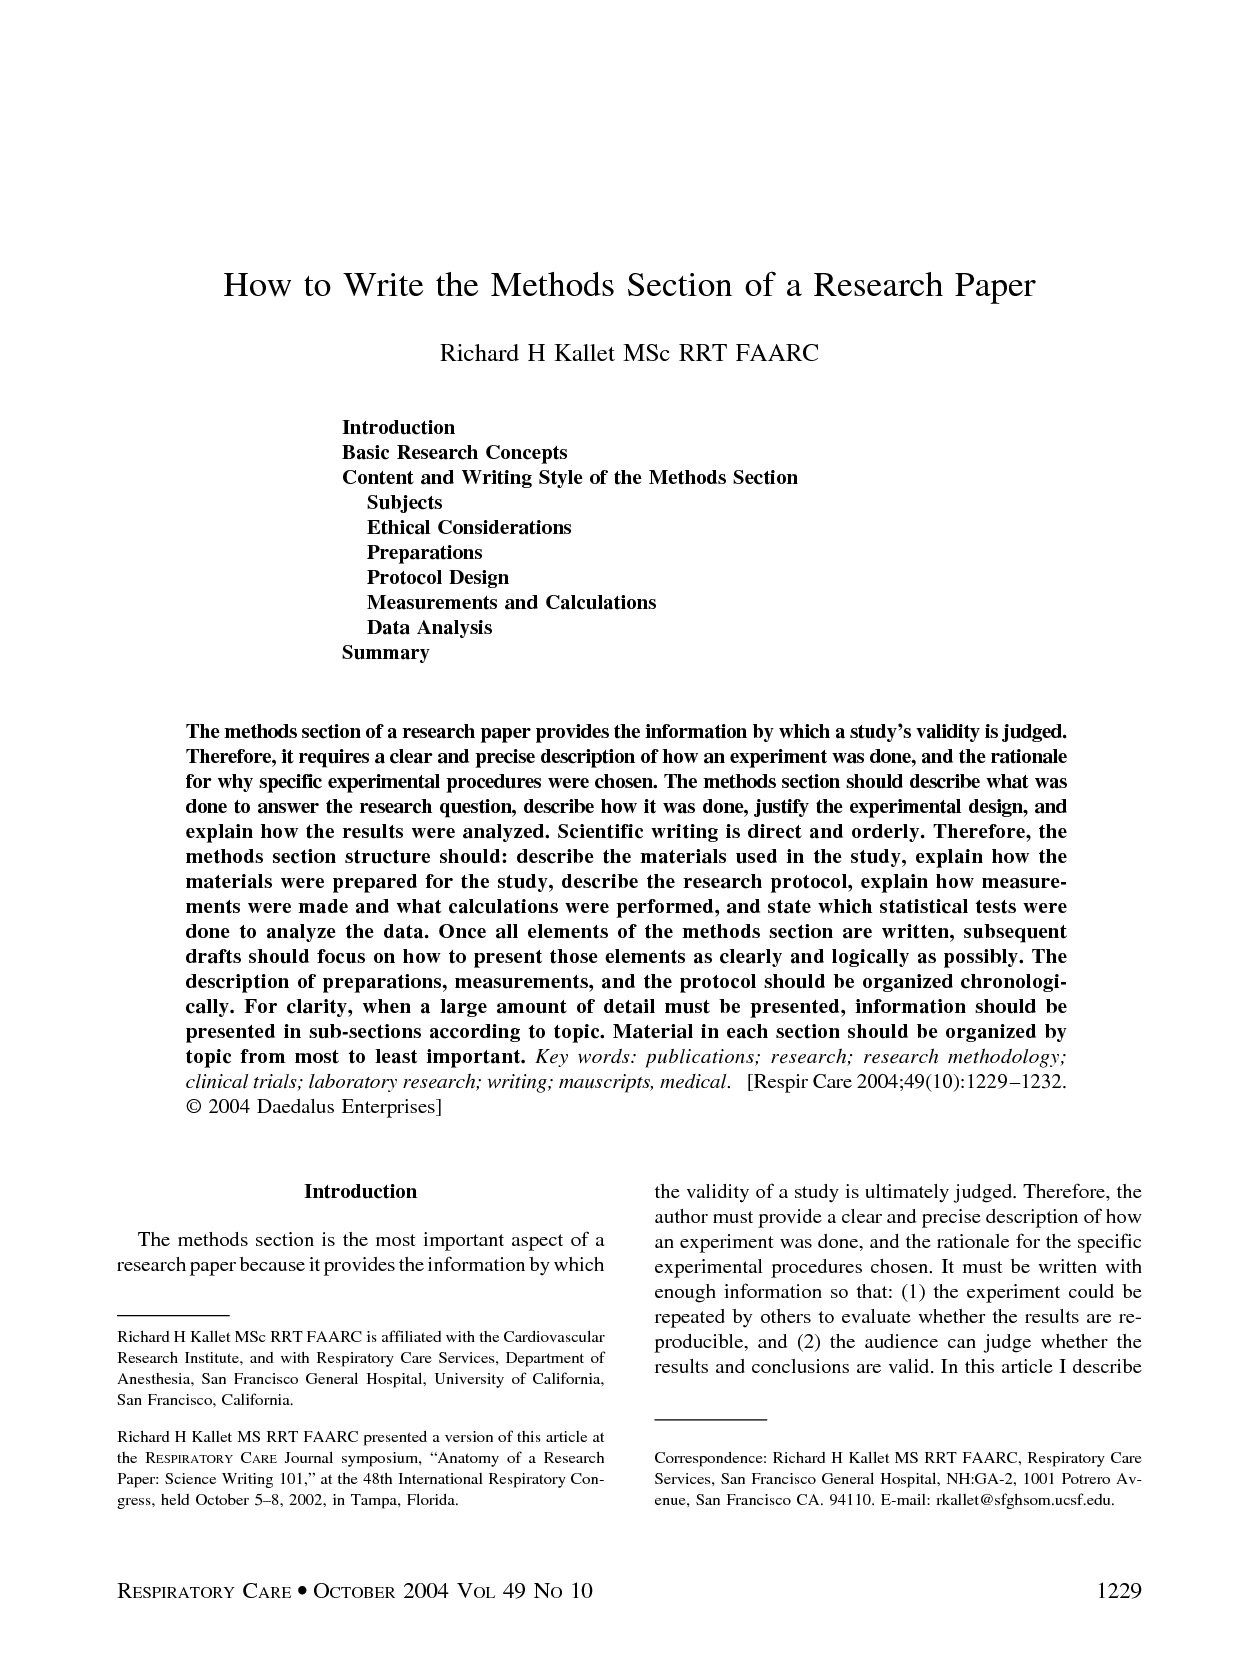 Research paper service methods section example